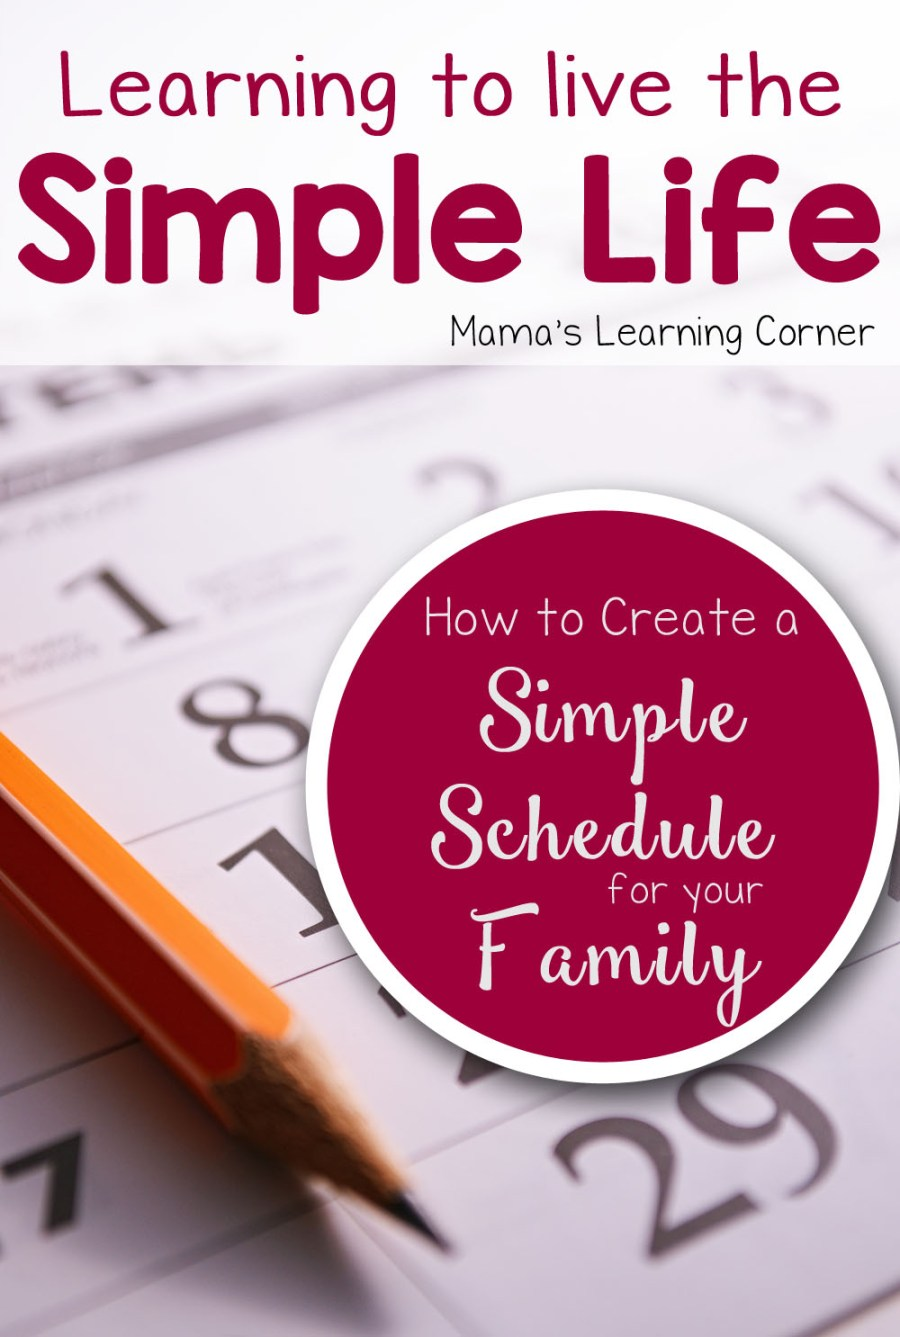 Living the Simple Life: How to Create a Simple Schedule for Your Family